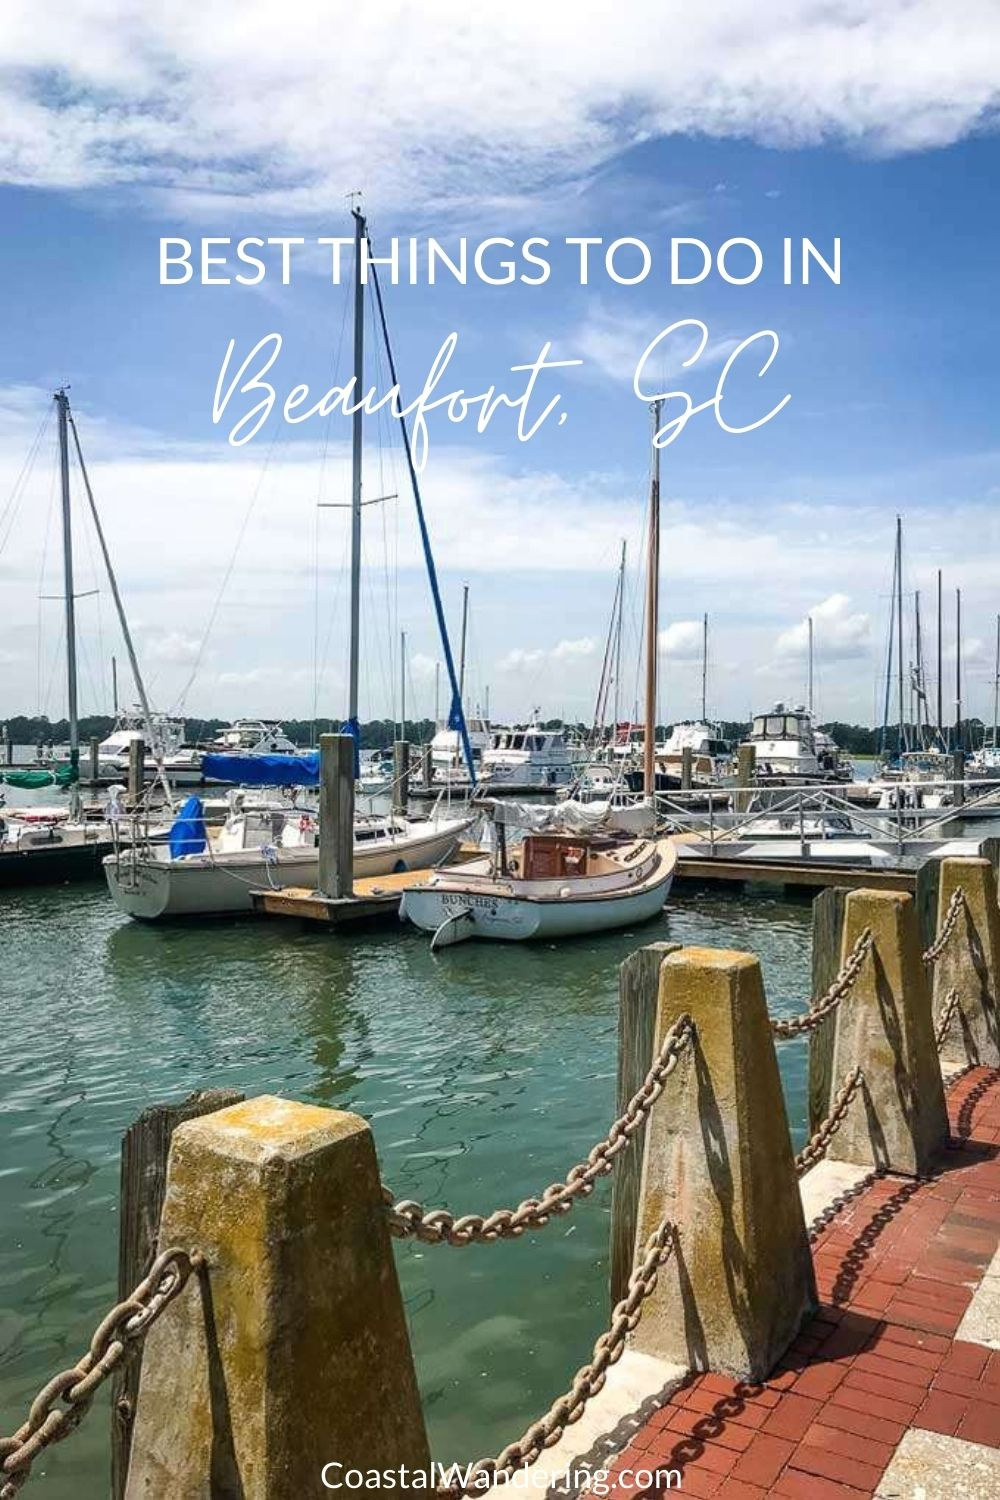 Best things to do Beaufort, SC